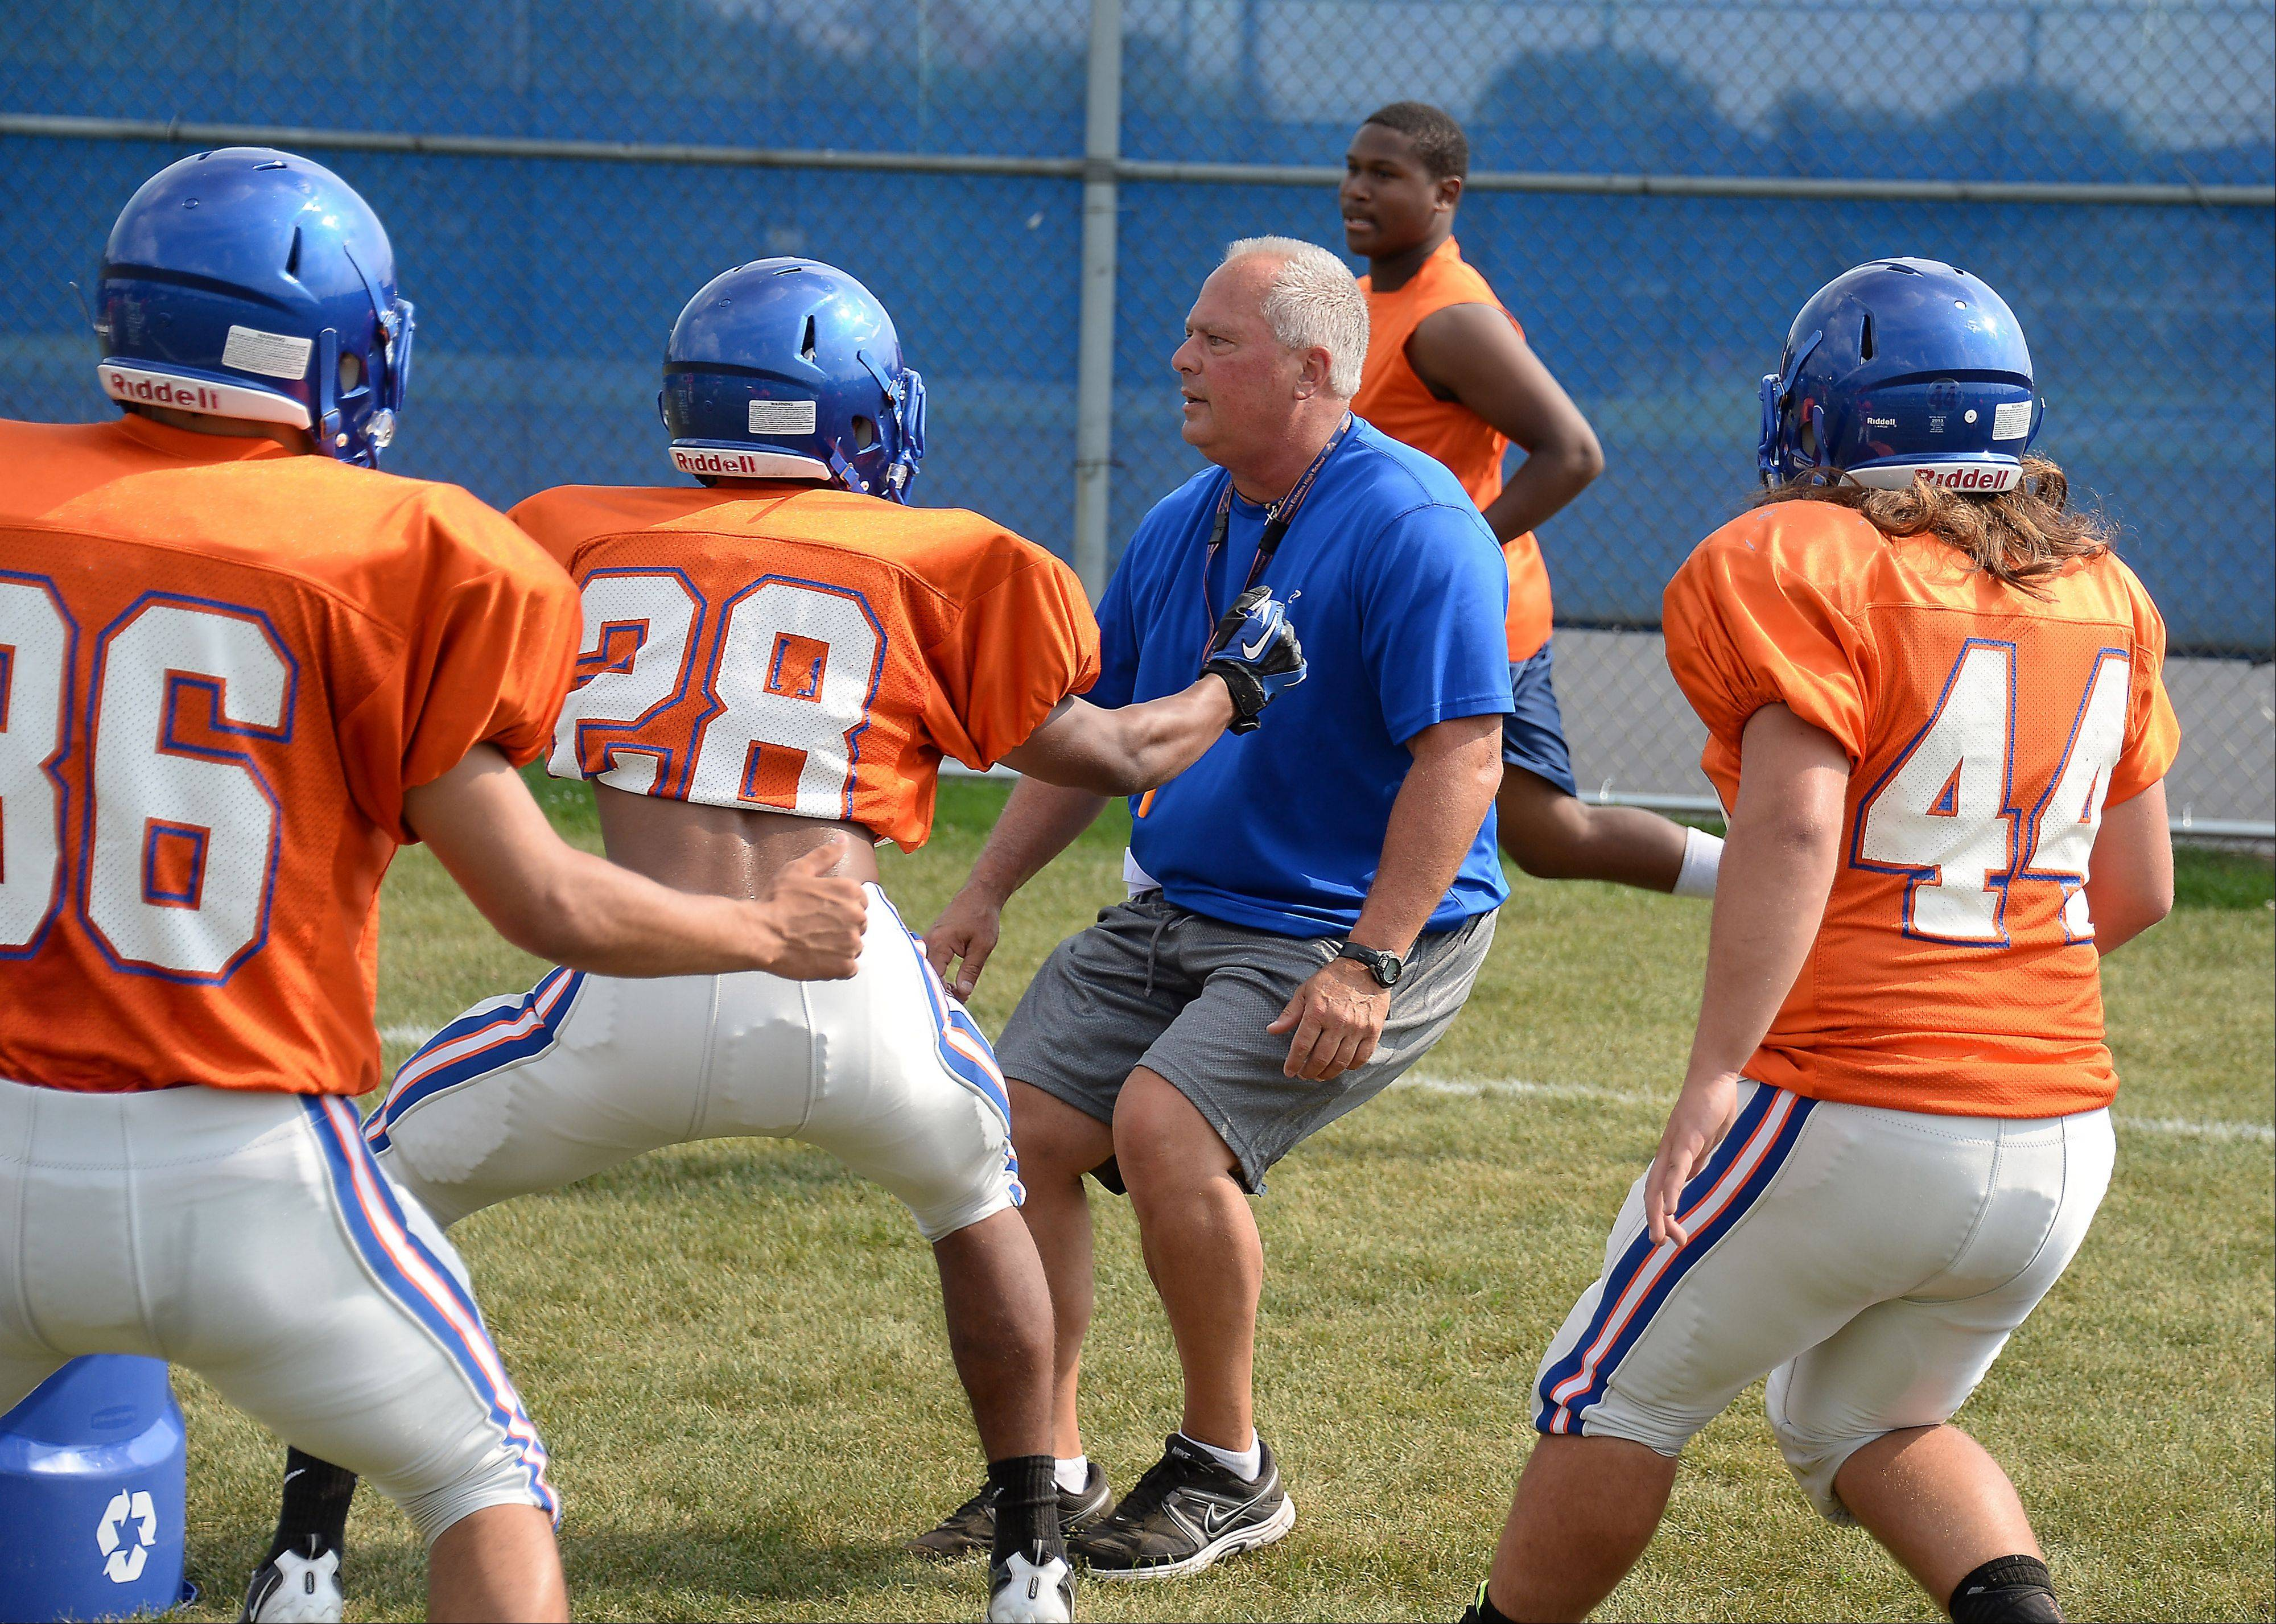 Hoffman Estates coach Mike Donatucci takes a hands-on approach during practice.